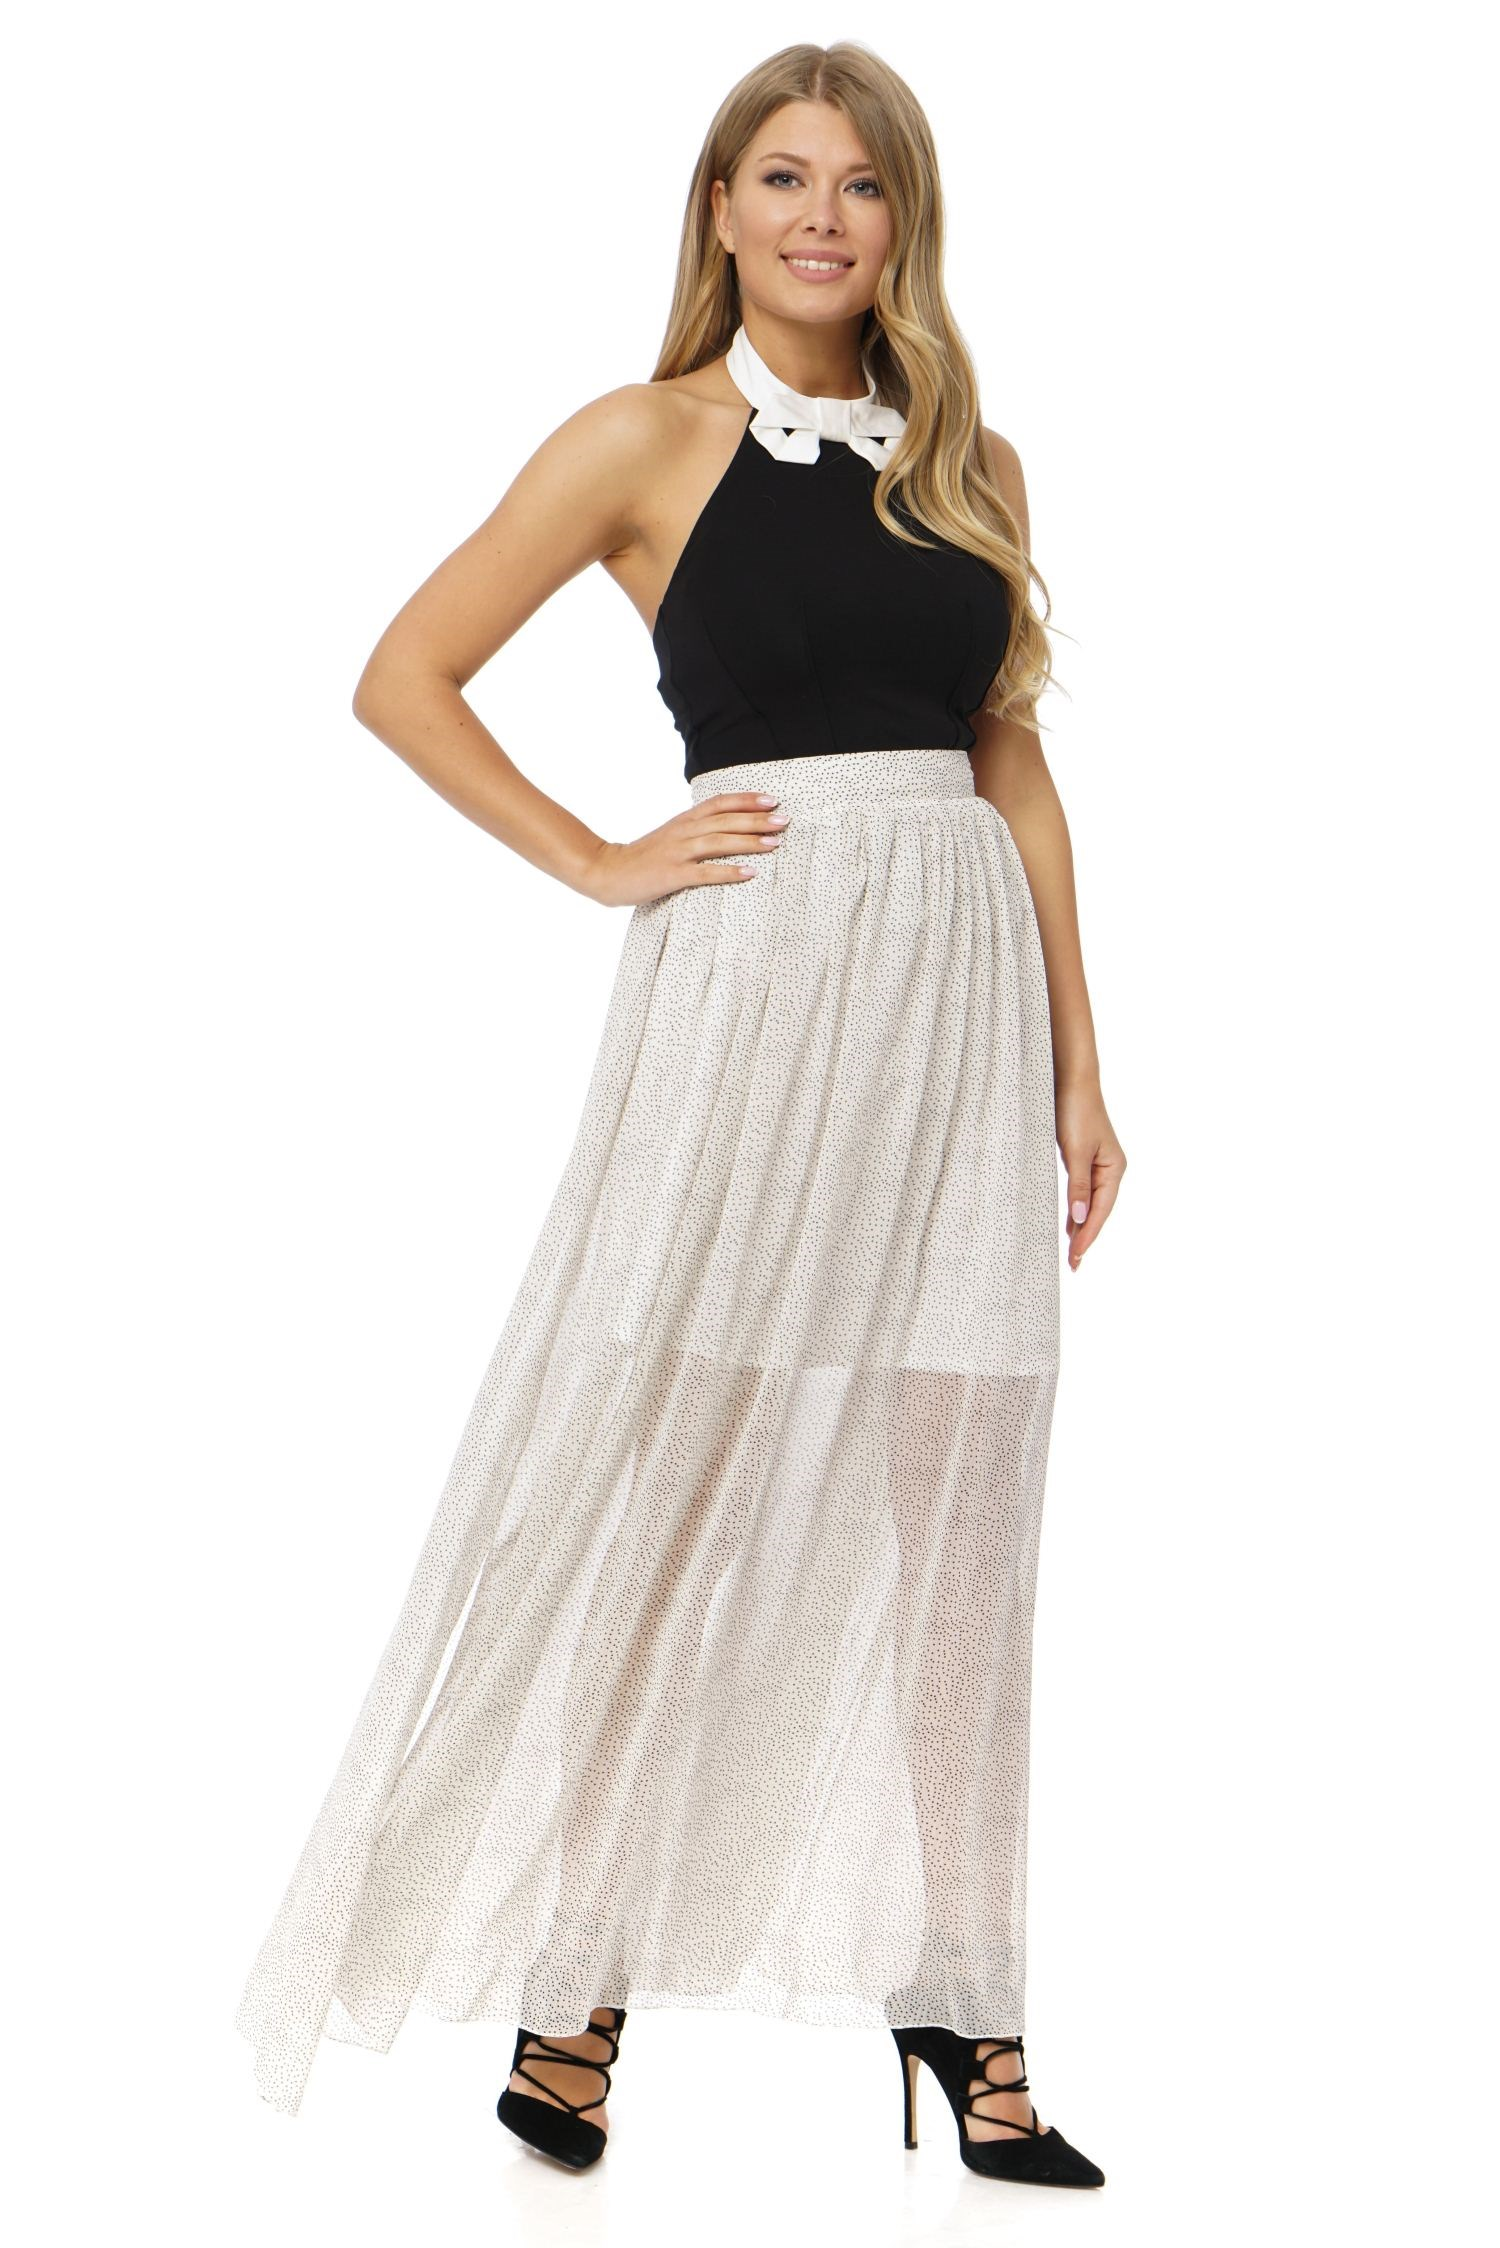 Skirt A-shaped silhouette, floor length, is made from lightweight chiffon, with lining, with slits at sides. high quality digital length counter meter with length measurment wheel